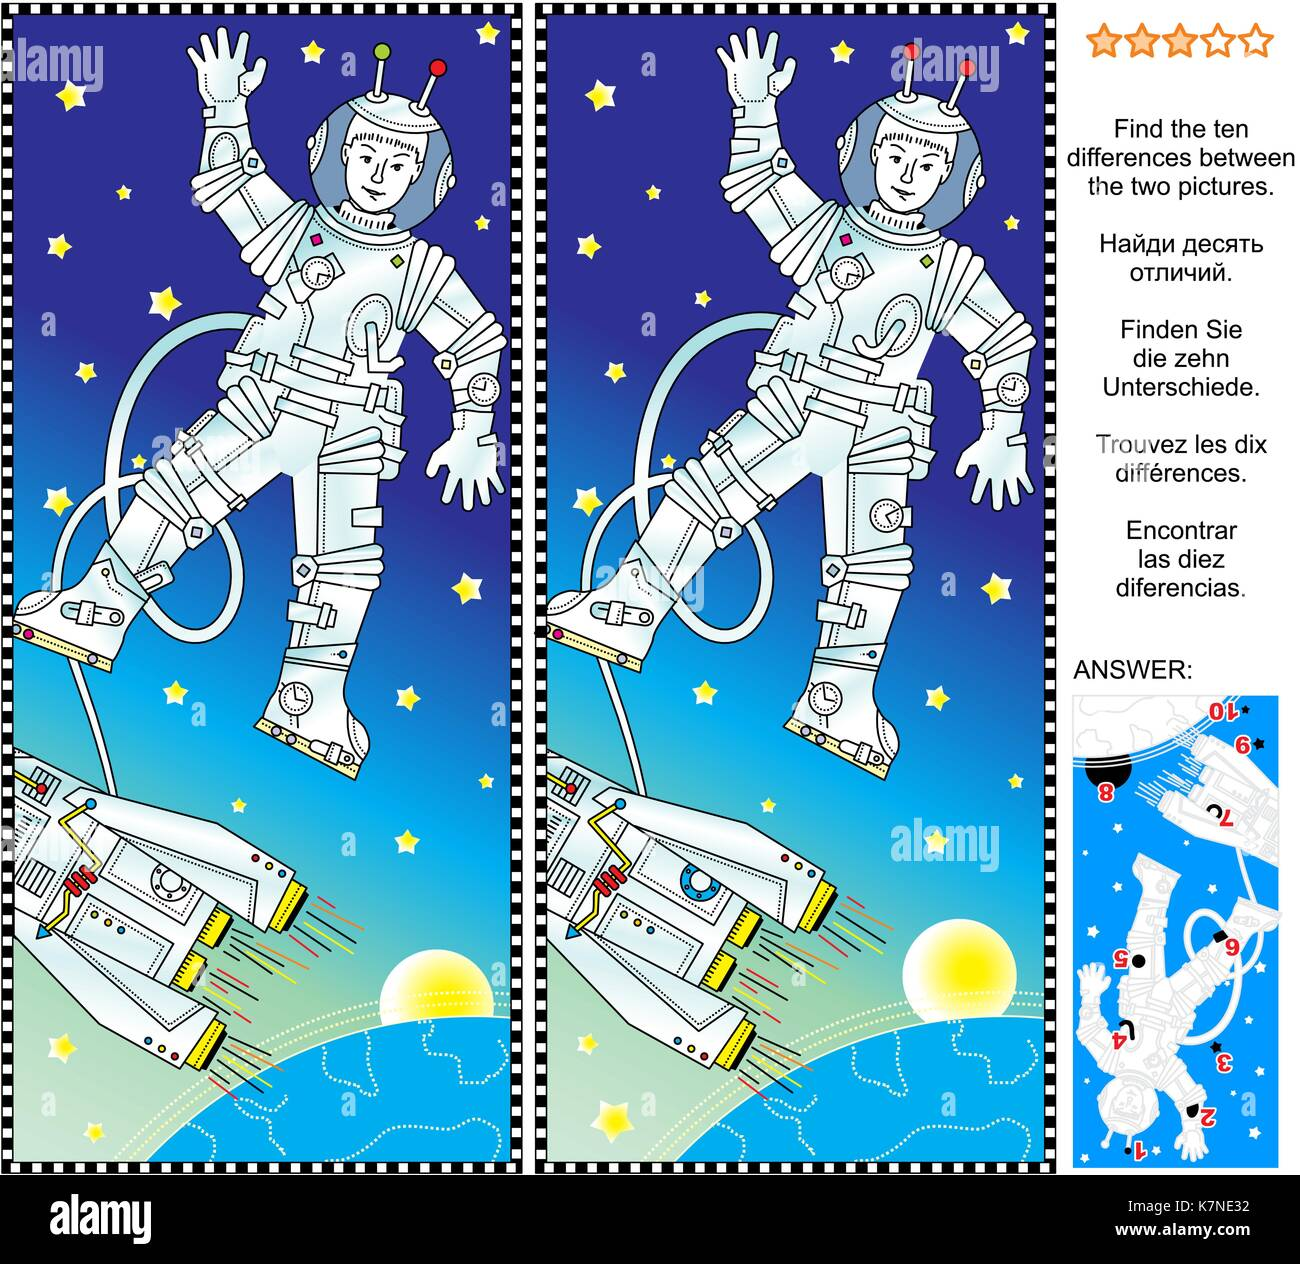 Picture puzzle: Find the ten differences between the two pictures of outer space, cosmonaut or astronaut, spaceship, - Stock Image